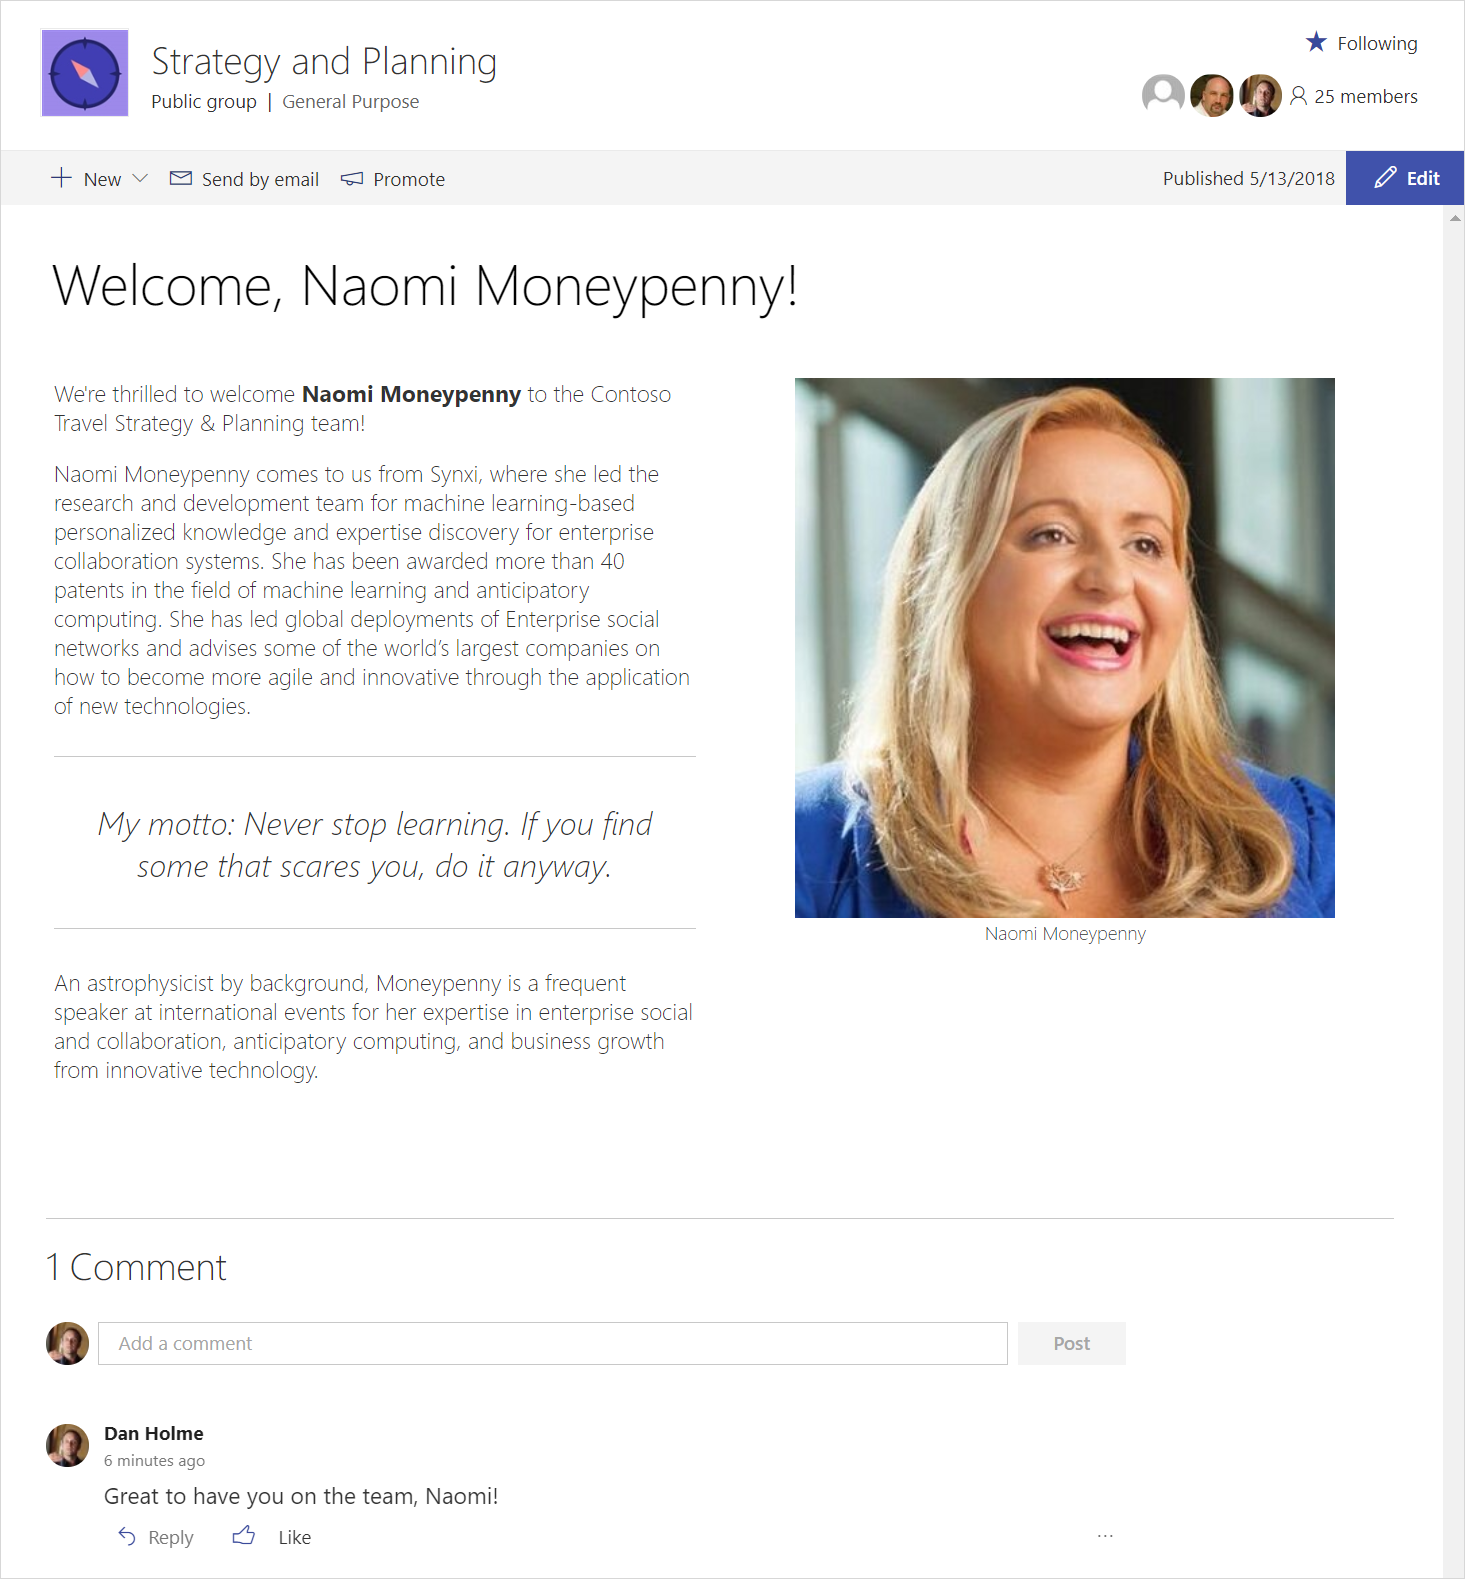 A screenshot shows SharePoint news, which uses pages and web parts with rich, dynamic content to keep people up-to-date.